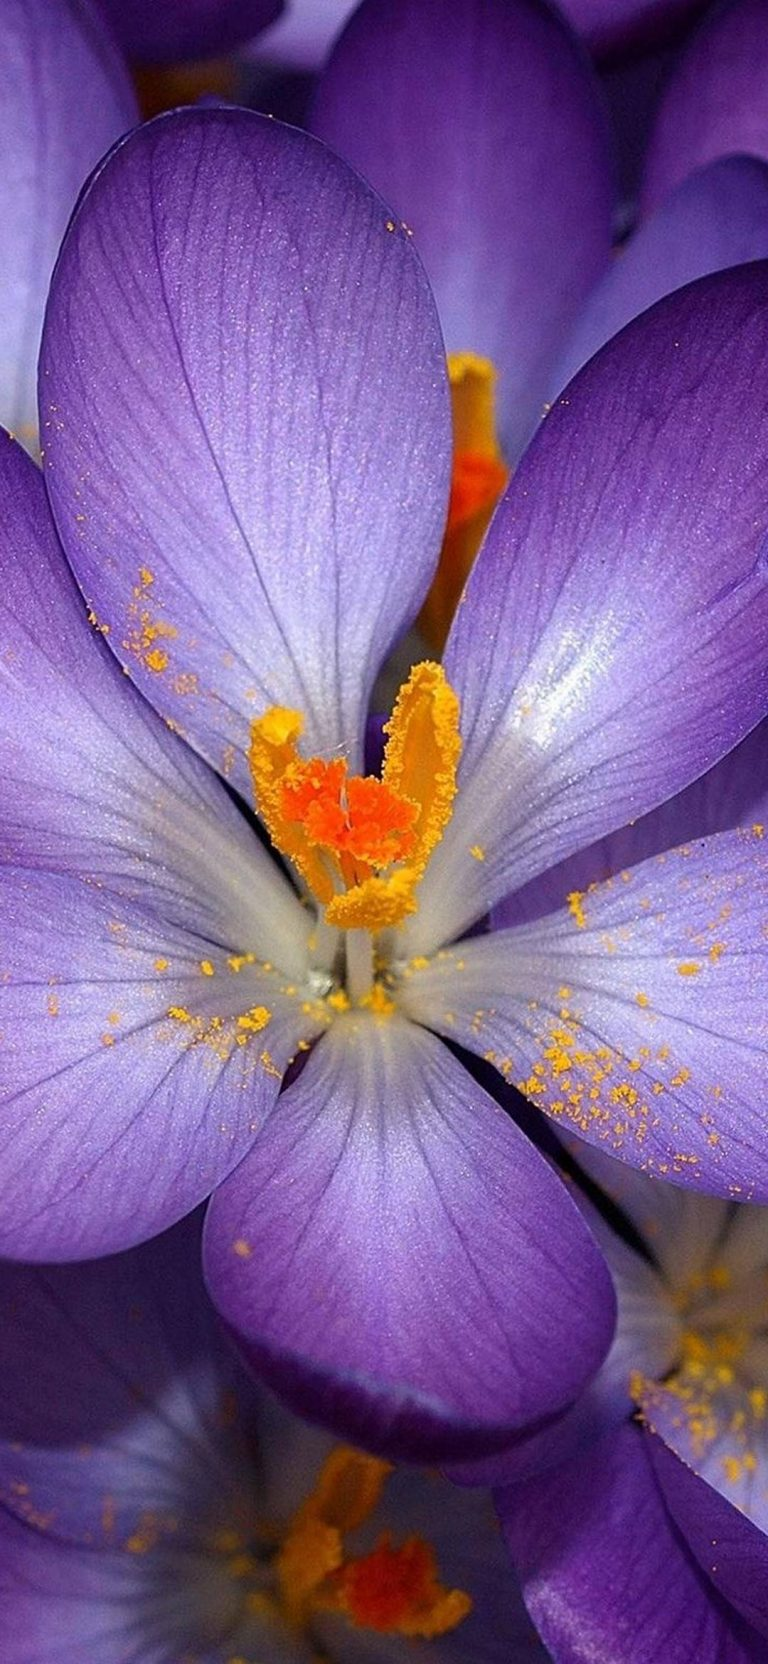 Autumn Purple Crocus 1080x2340 768x1664